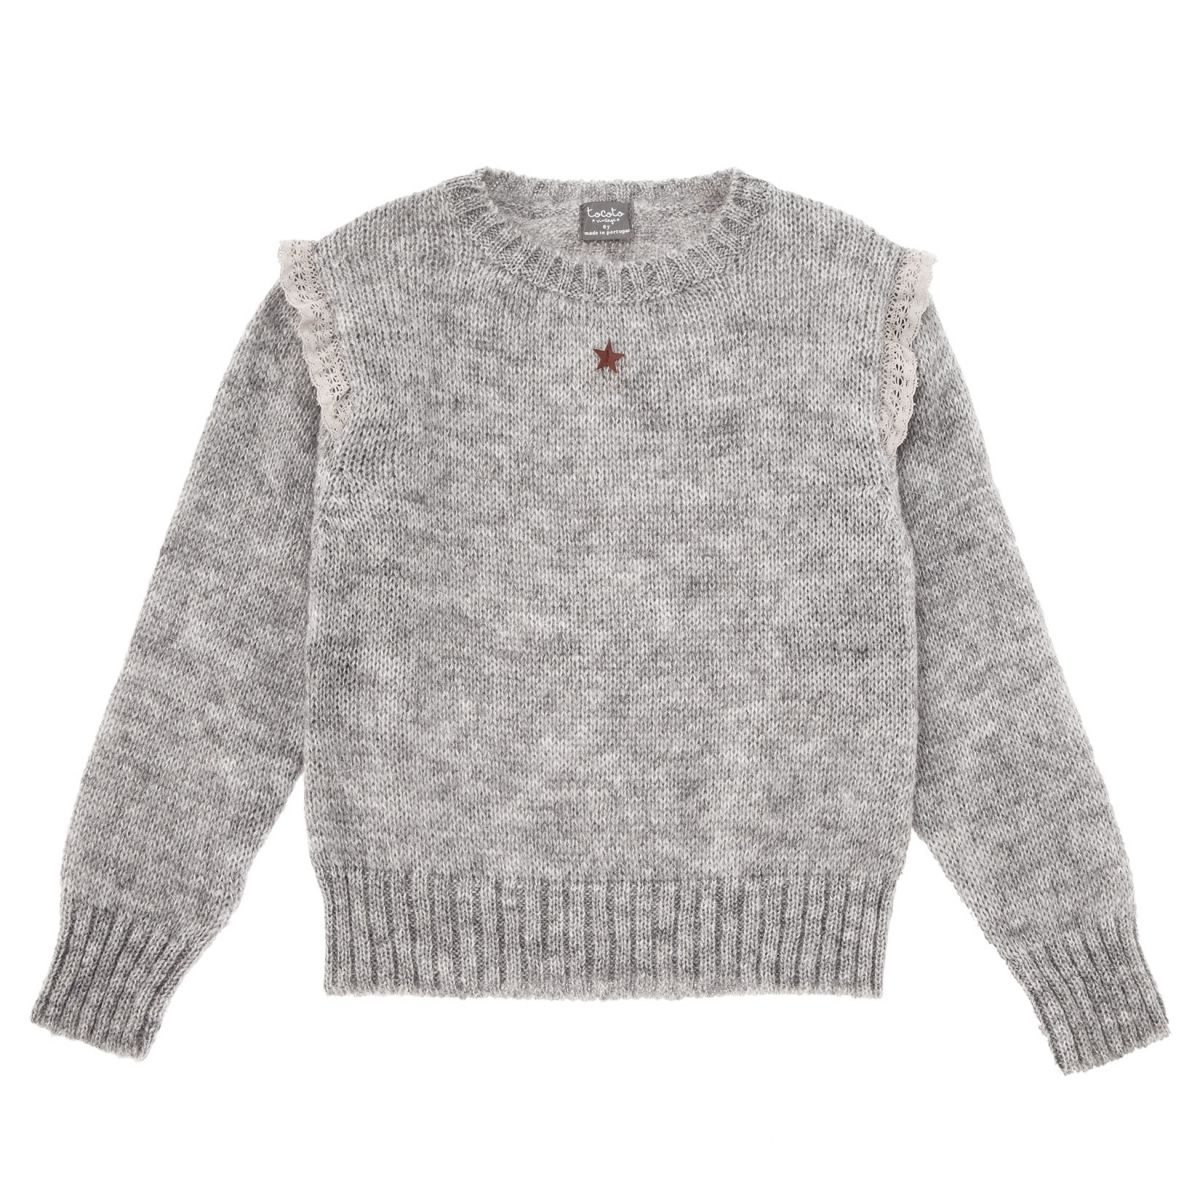 Tocoto Vintage - Sweter knitted szary - 1